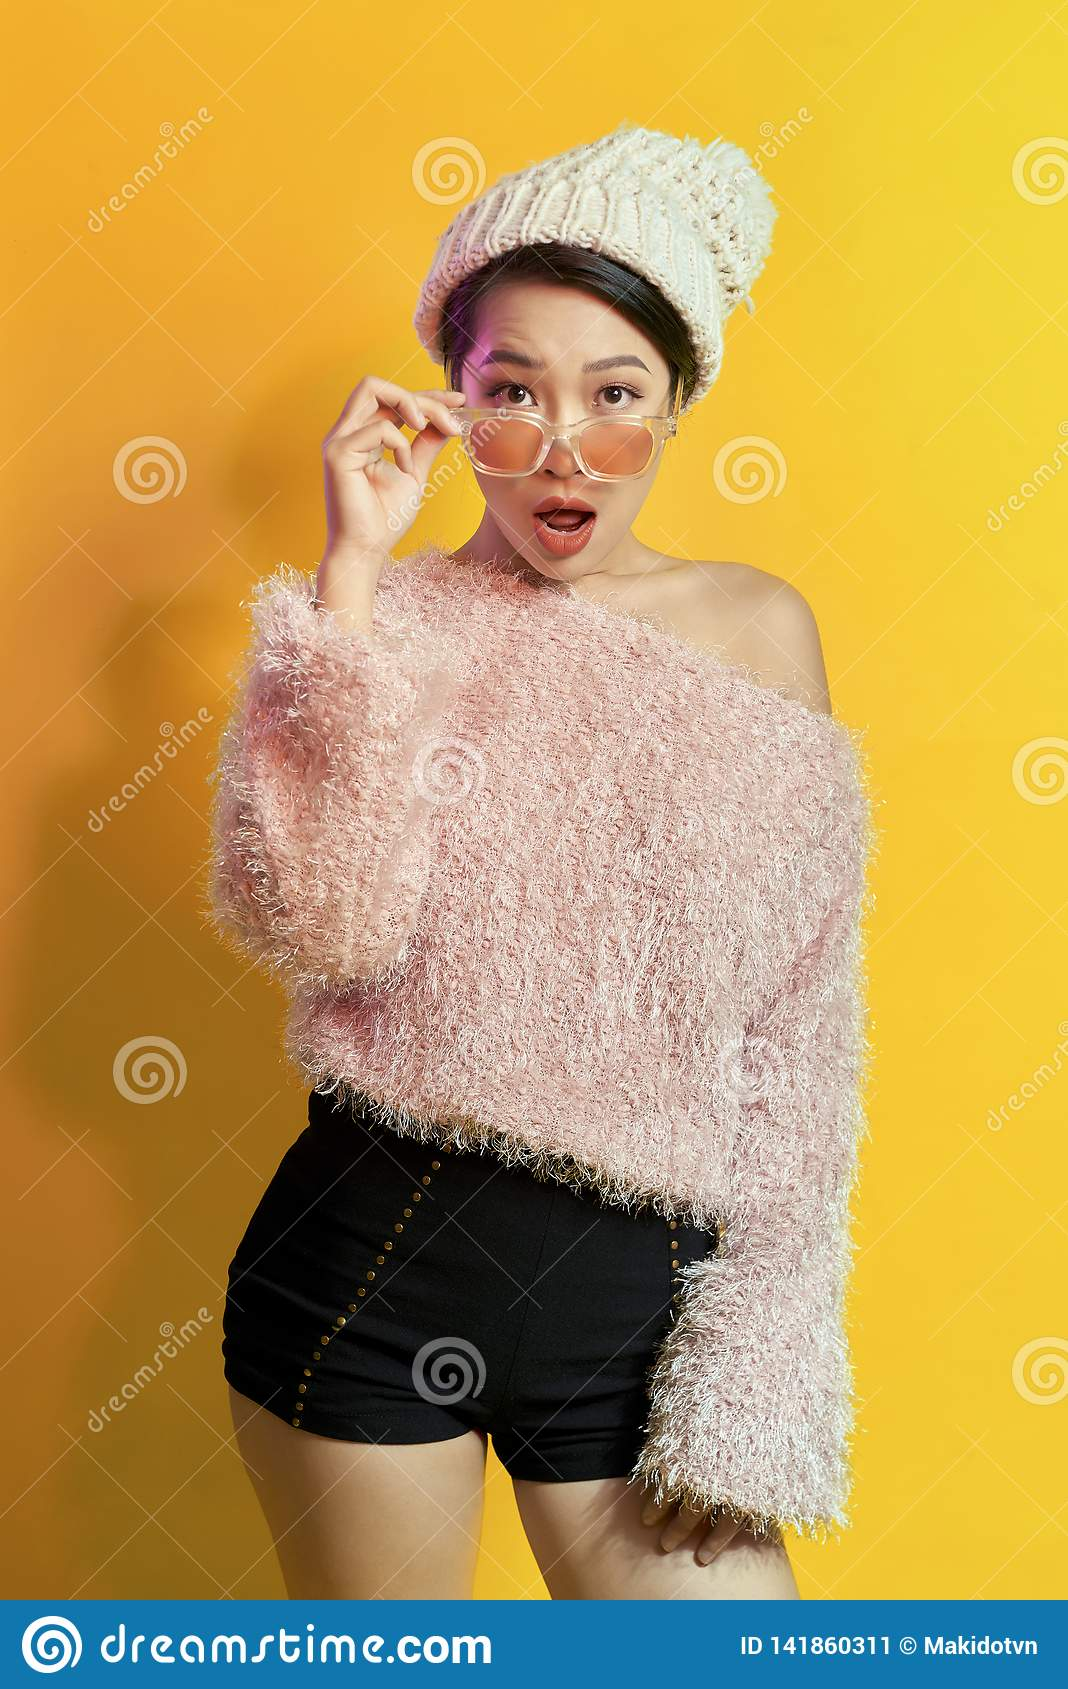 Emotional asian girl with colorful makeup posing on yellow background with eyeglasses. Indoor photo of amazed woman in trendy fur